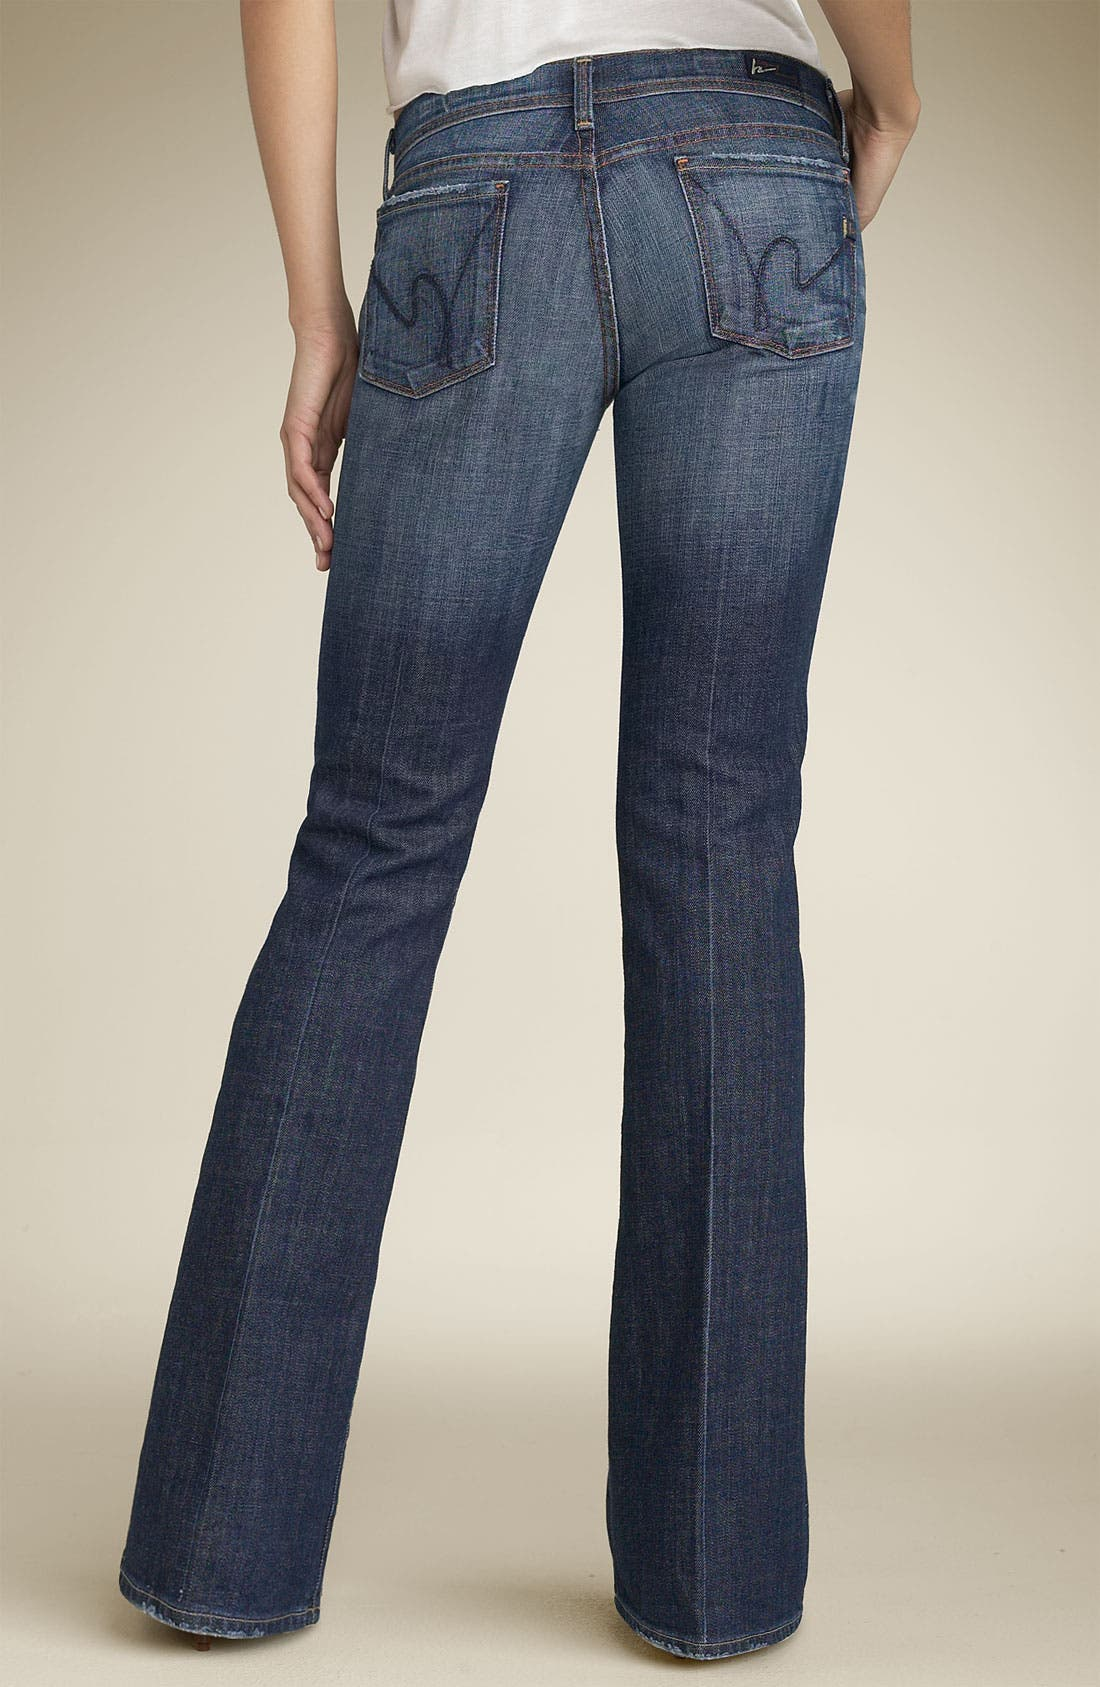 Alternate Image 1 Selected - Citizens of Humanity 'Ingrid' Stretch Jeans (Pacific Wash)